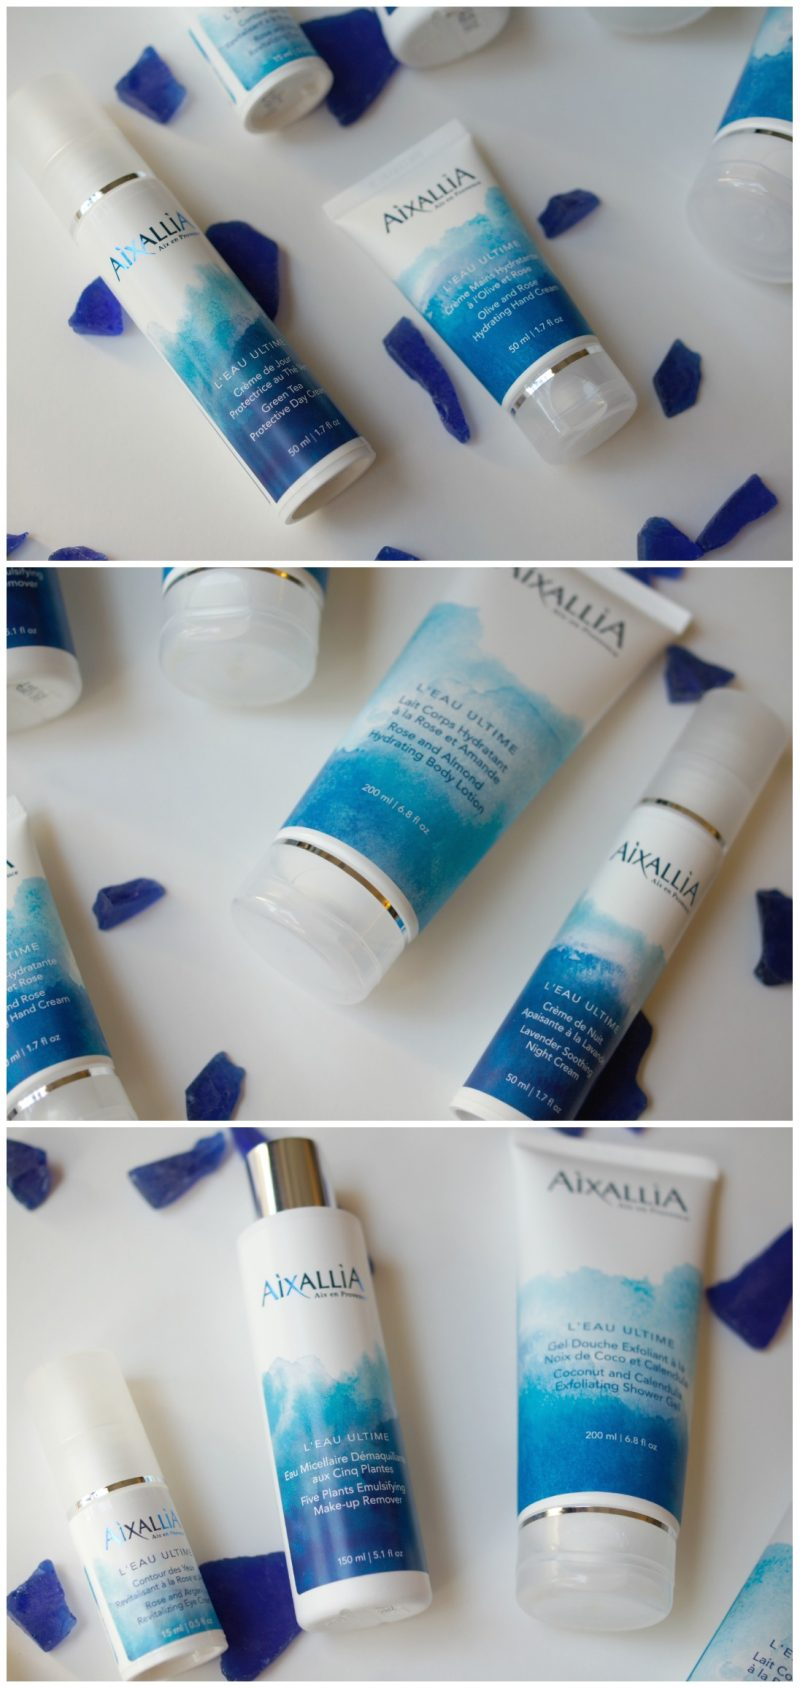 Aixallia Products